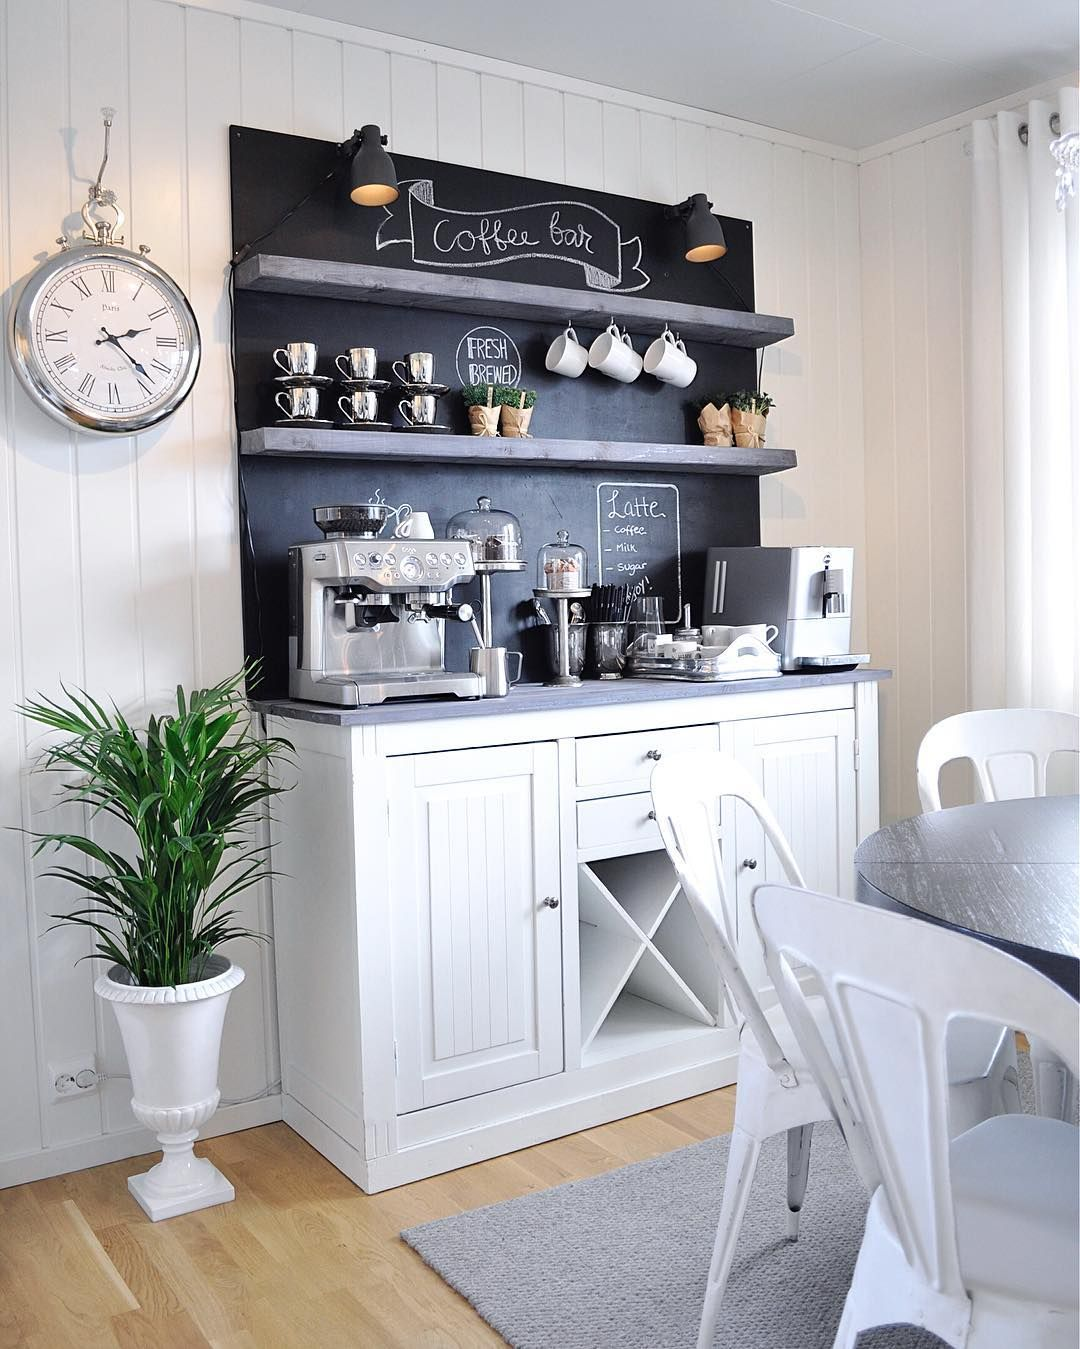 Space Corner Keuken 23 Best Diy Coffee Station Ideas You Need To See - She